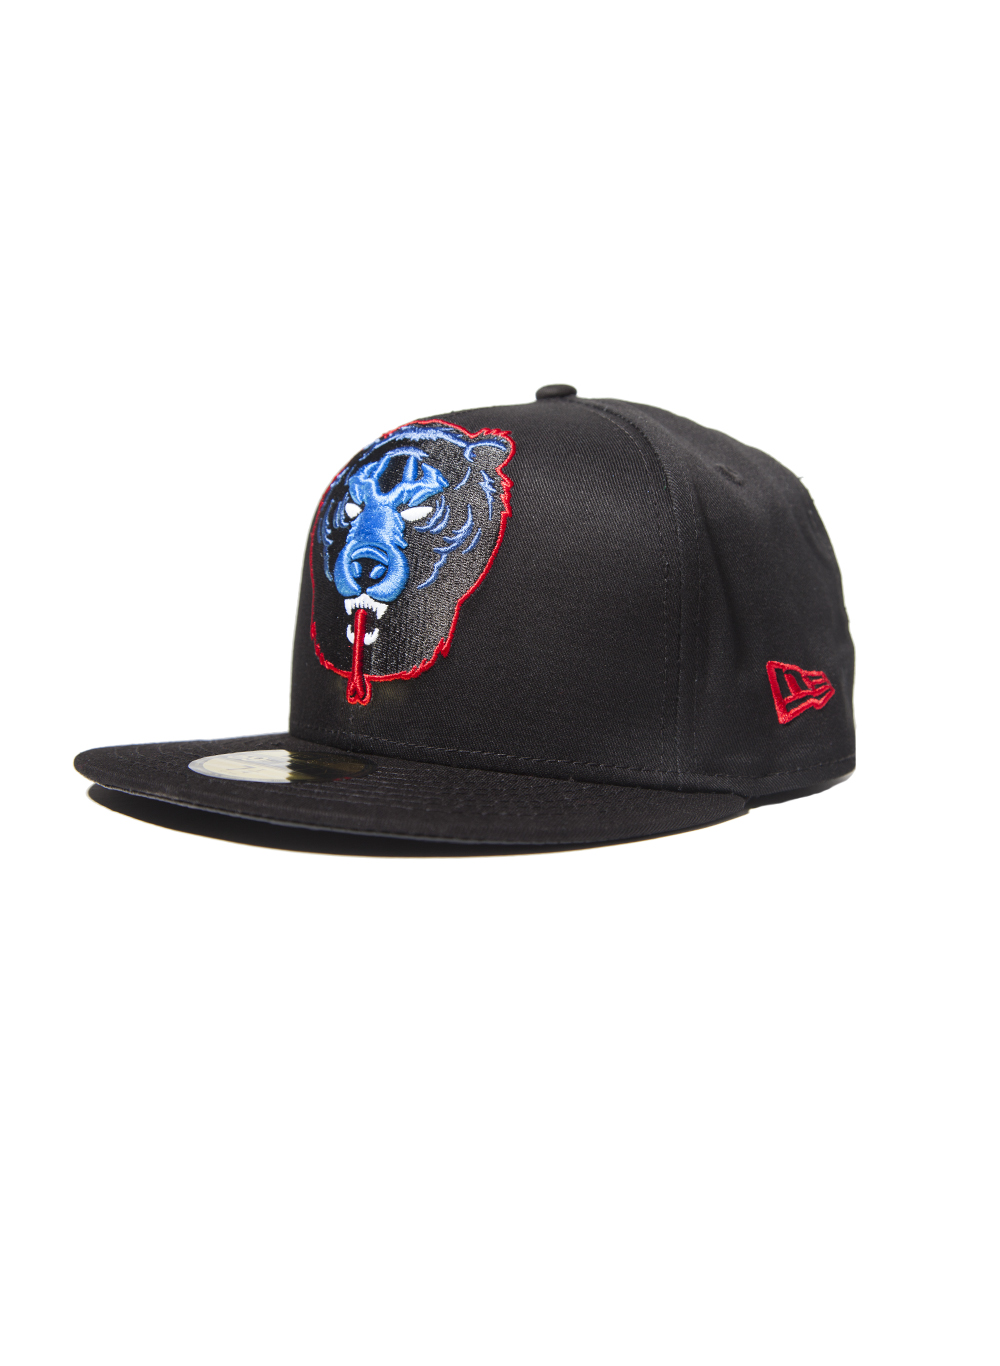 Heritage Death Adder New Era 5950